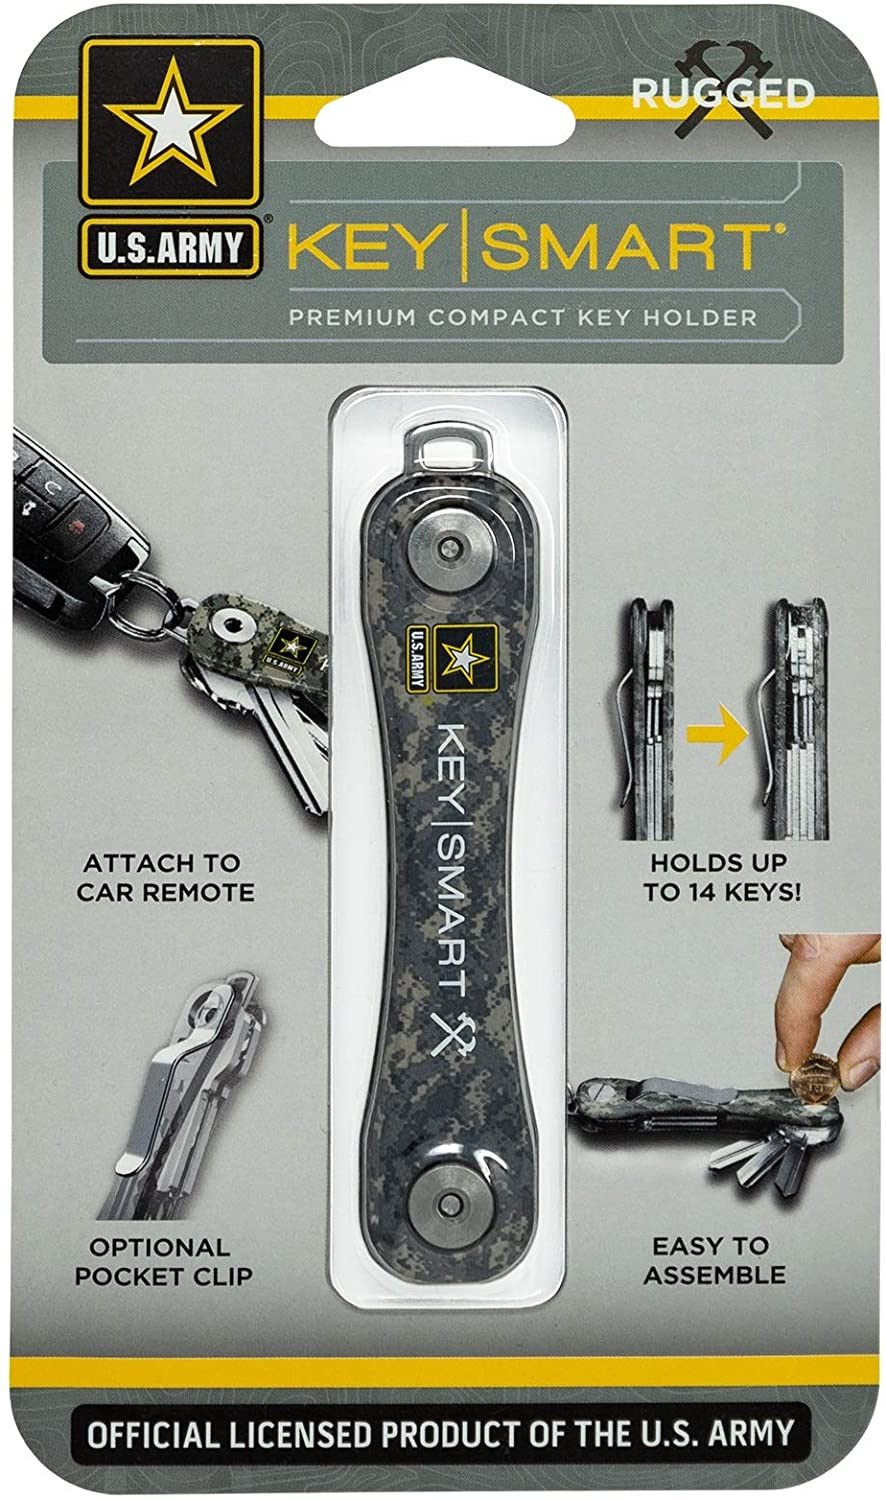 KeySmart Rugged - Opening large release sale Outlet SALE Multi-Tool Key Holder with and P Bottle Opener